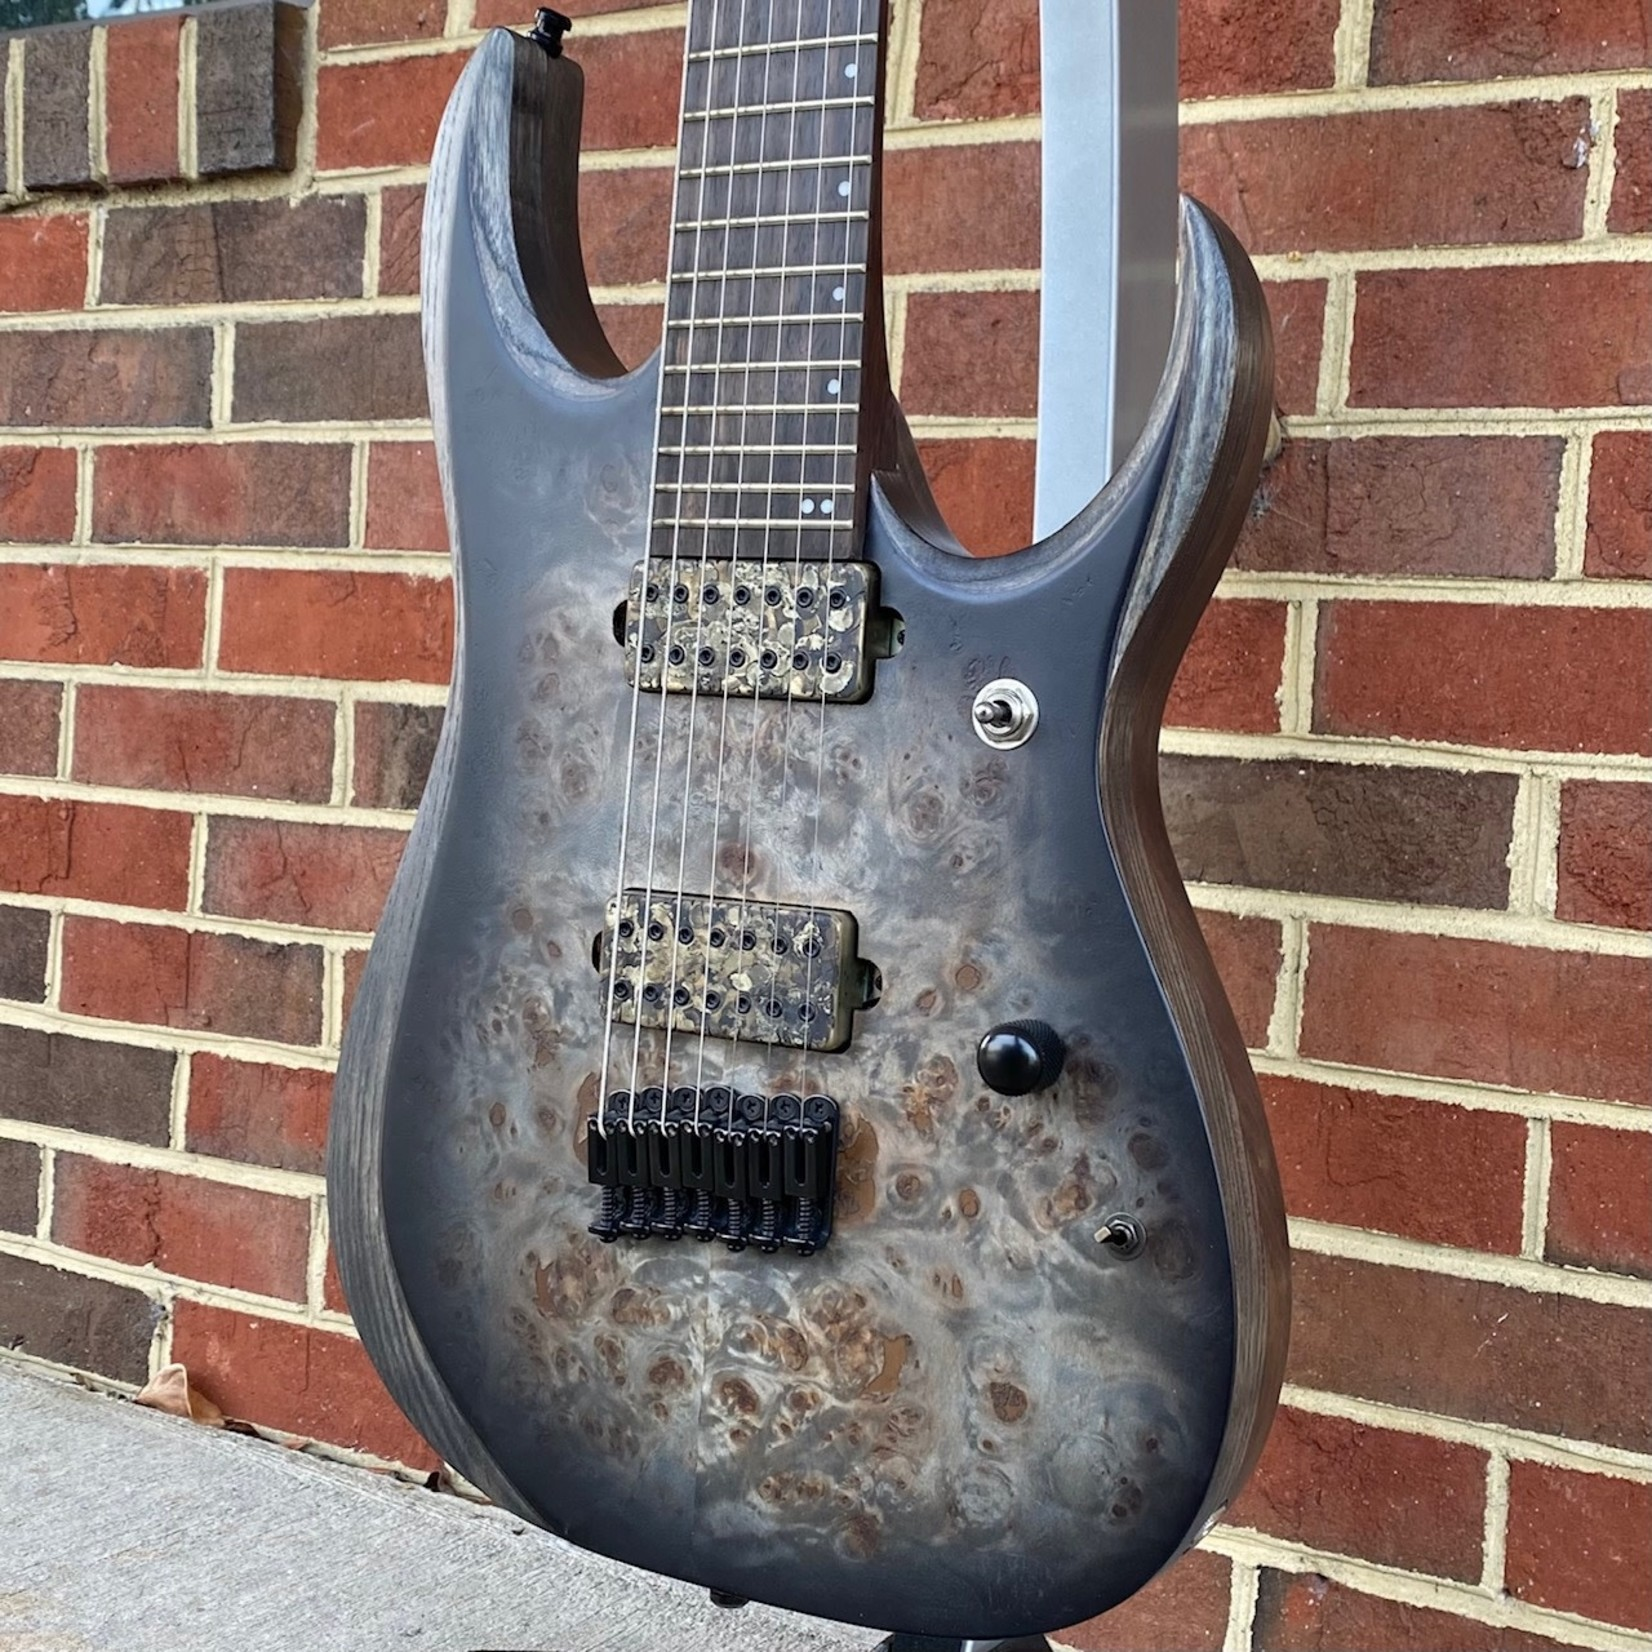 Ibanez Ibanez RGD71ALPACKF Axion Label, Charcoal Burst Black Stained Flat, Bareknuckle Aftermath Pickups, SN# I210323525